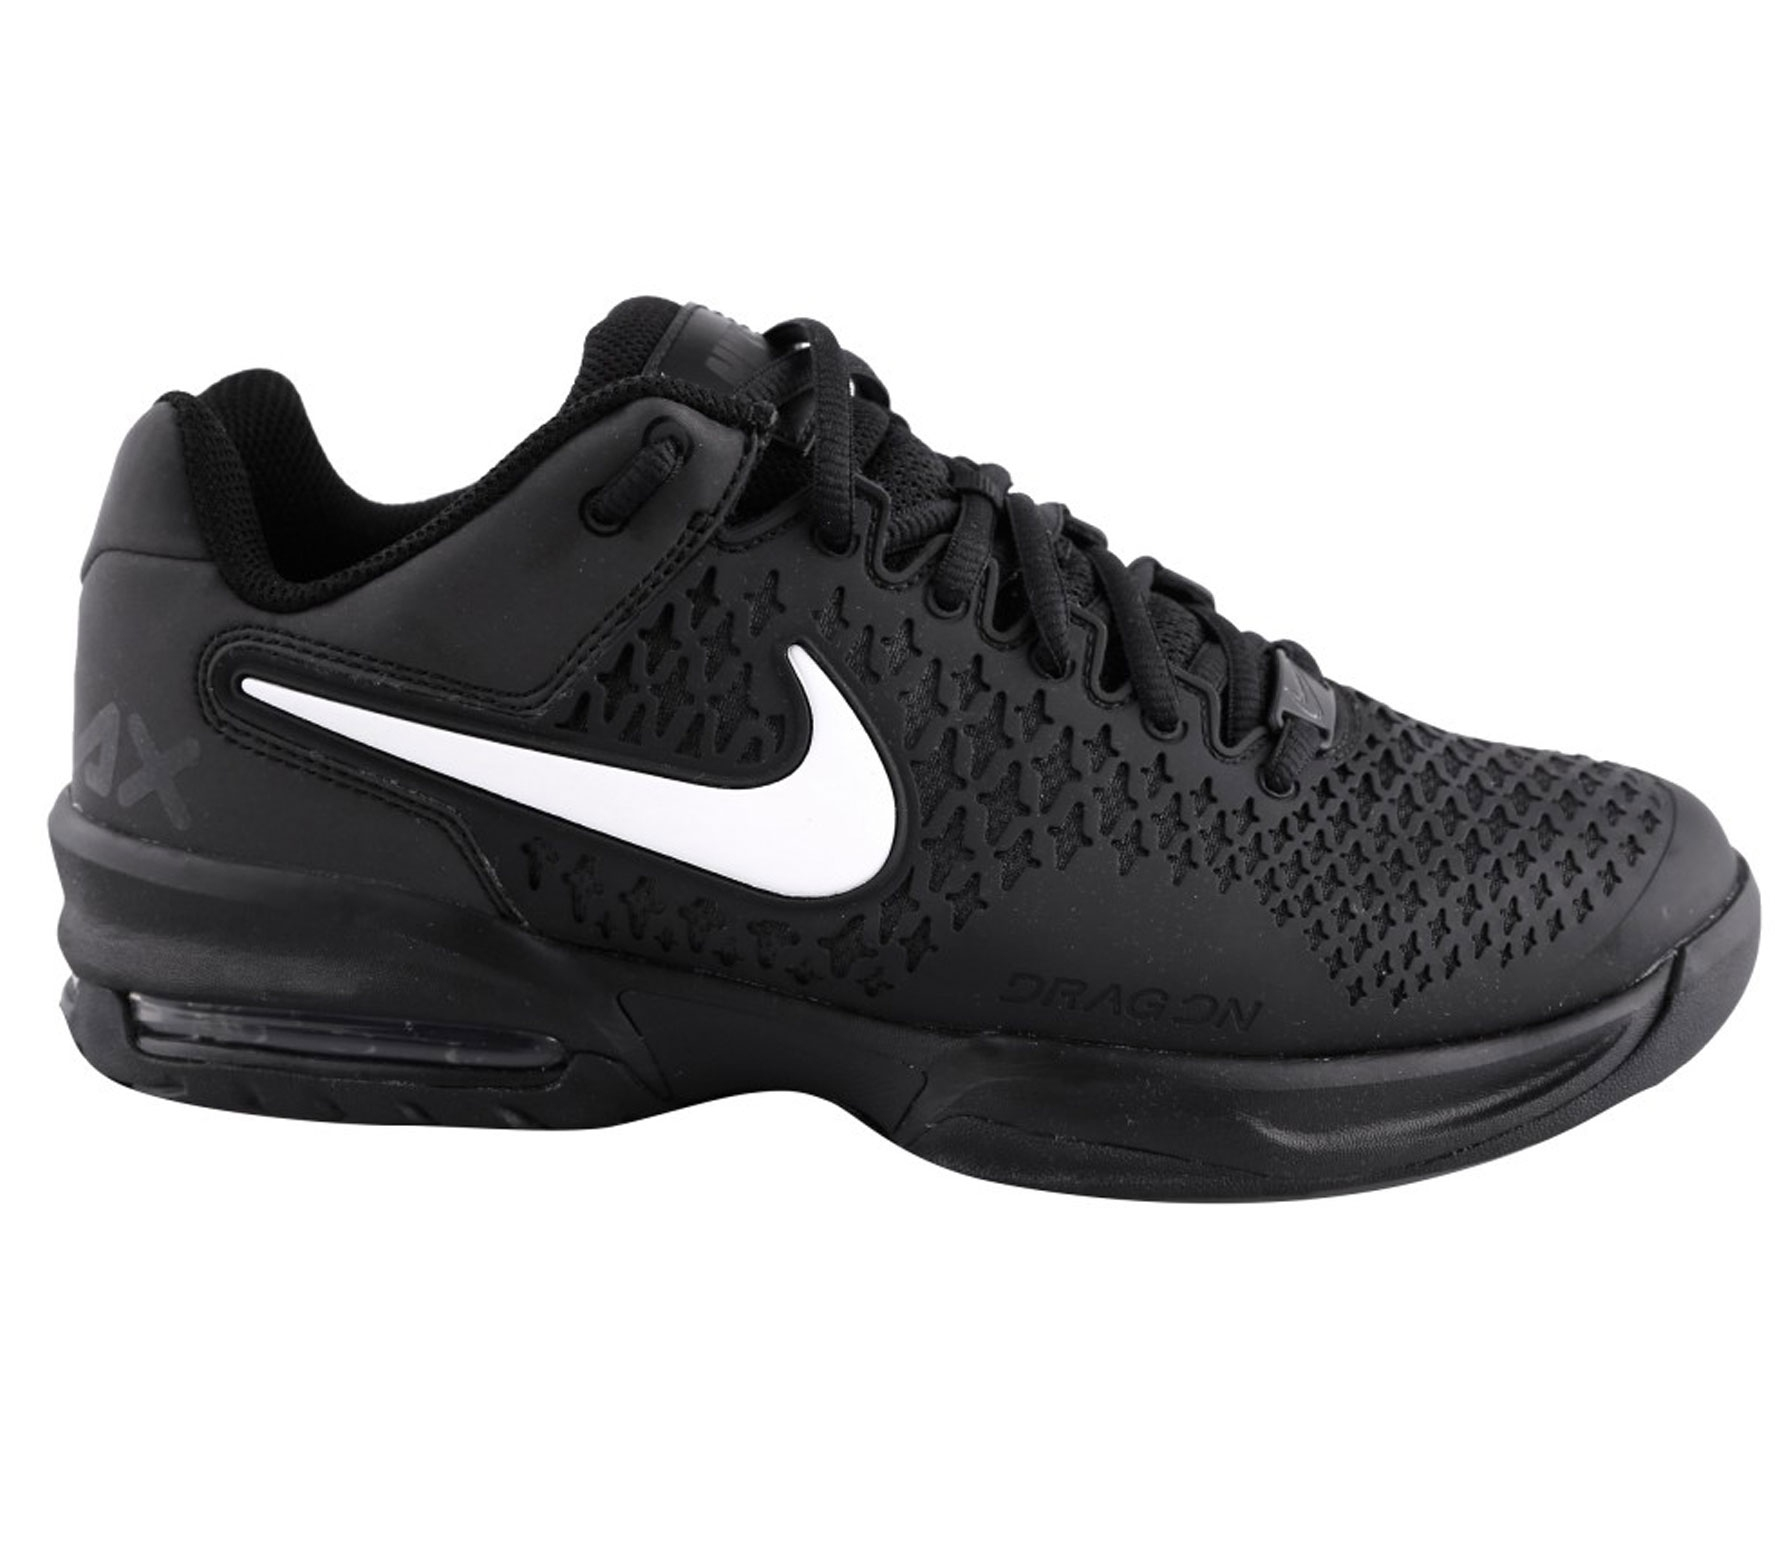 nike air max cage limited edition damen tennisschuh schwarz wei tennis tennisschuhe damen. Black Bedroom Furniture Sets. Home Design Ideas